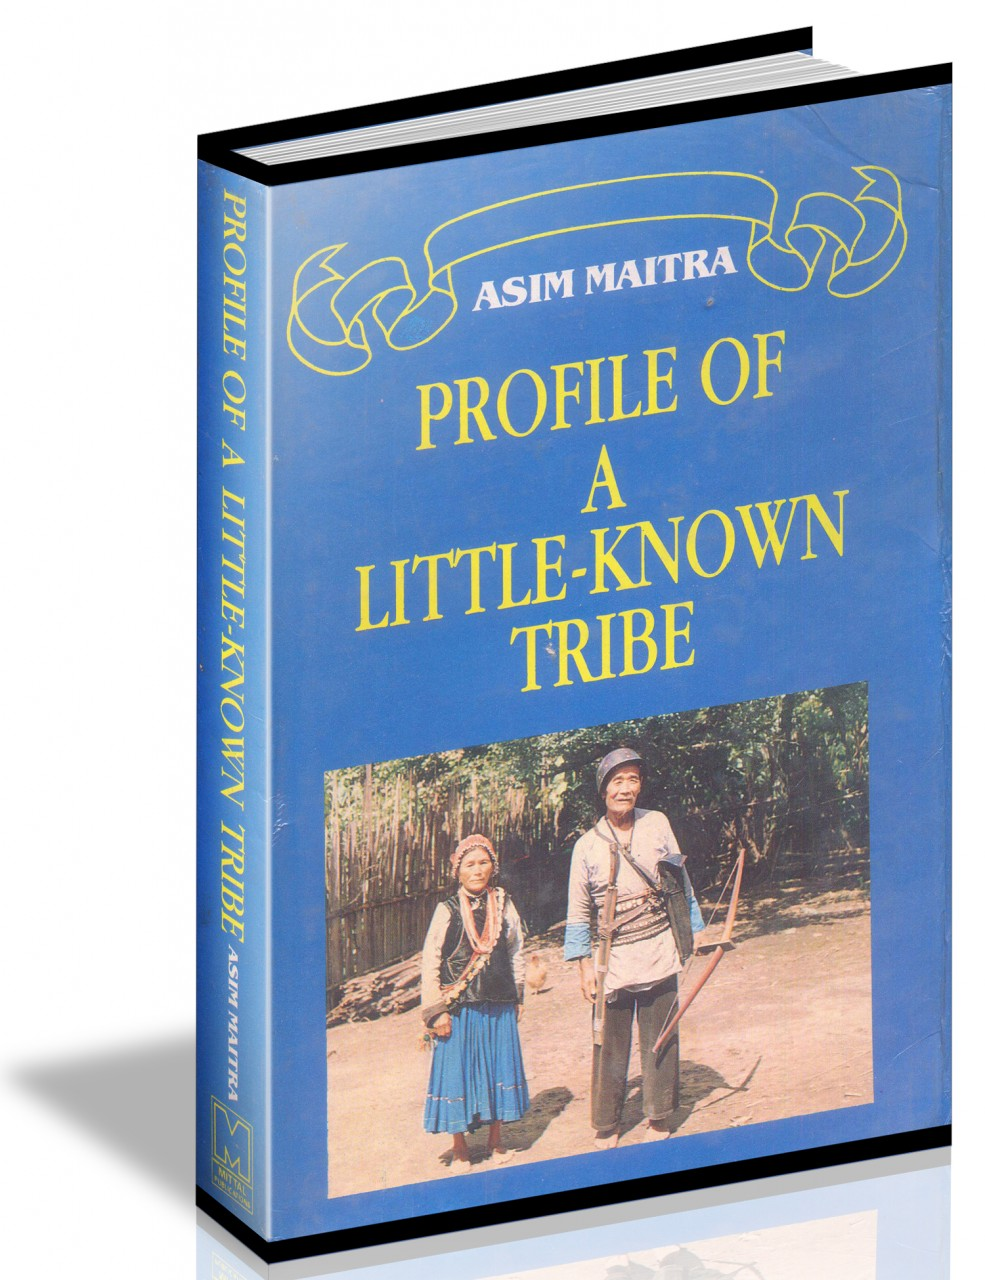 Profile Of A Little-Known Tribe